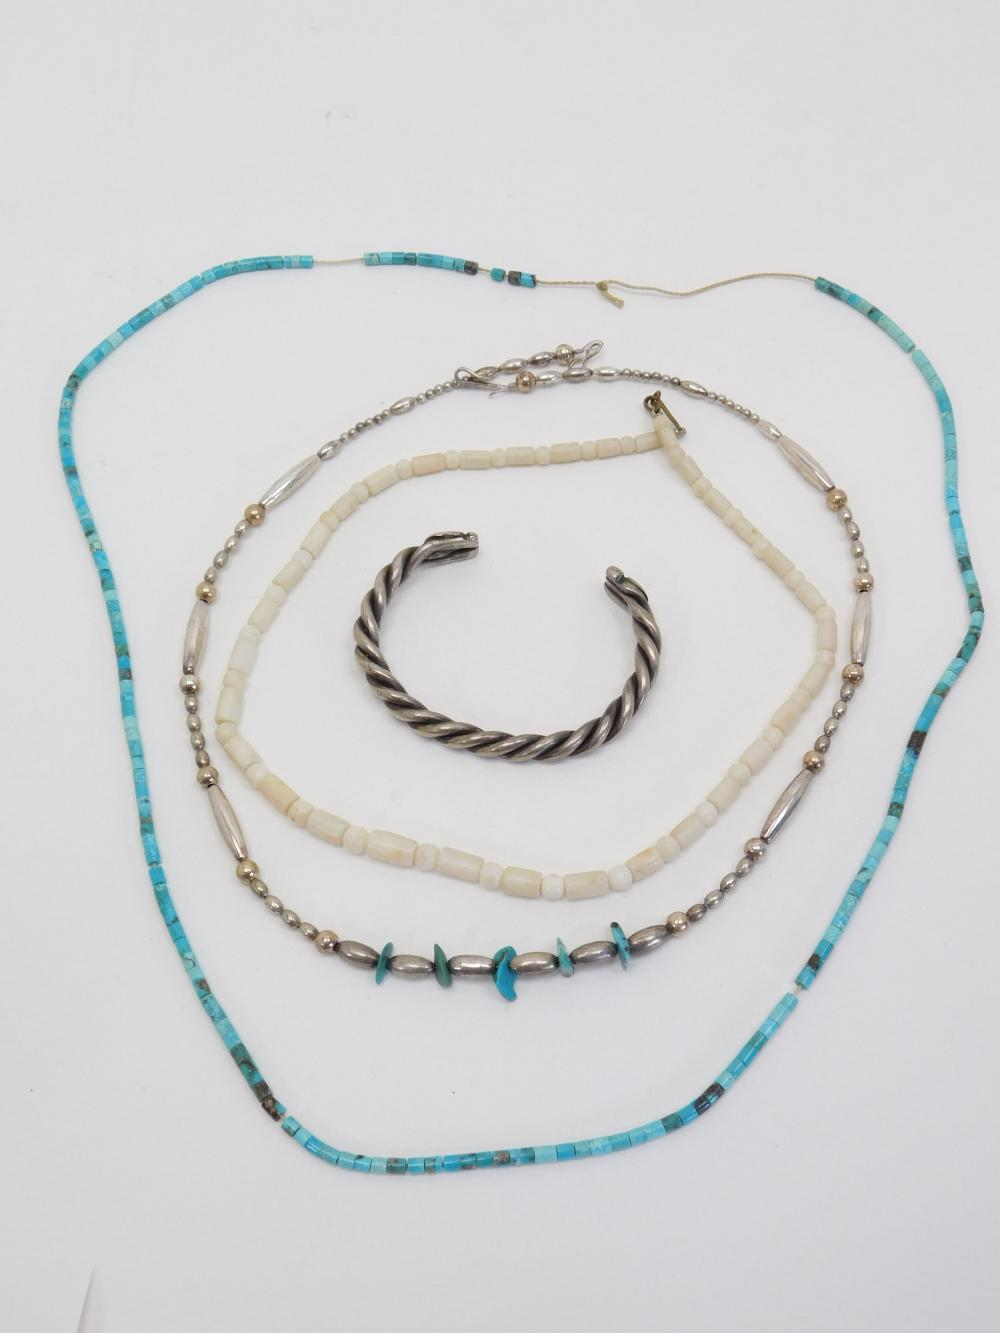 Vintage Native American Turquoise Mop Bead Necklaces & Silverplated Twisted Cuff Bracelet 73G